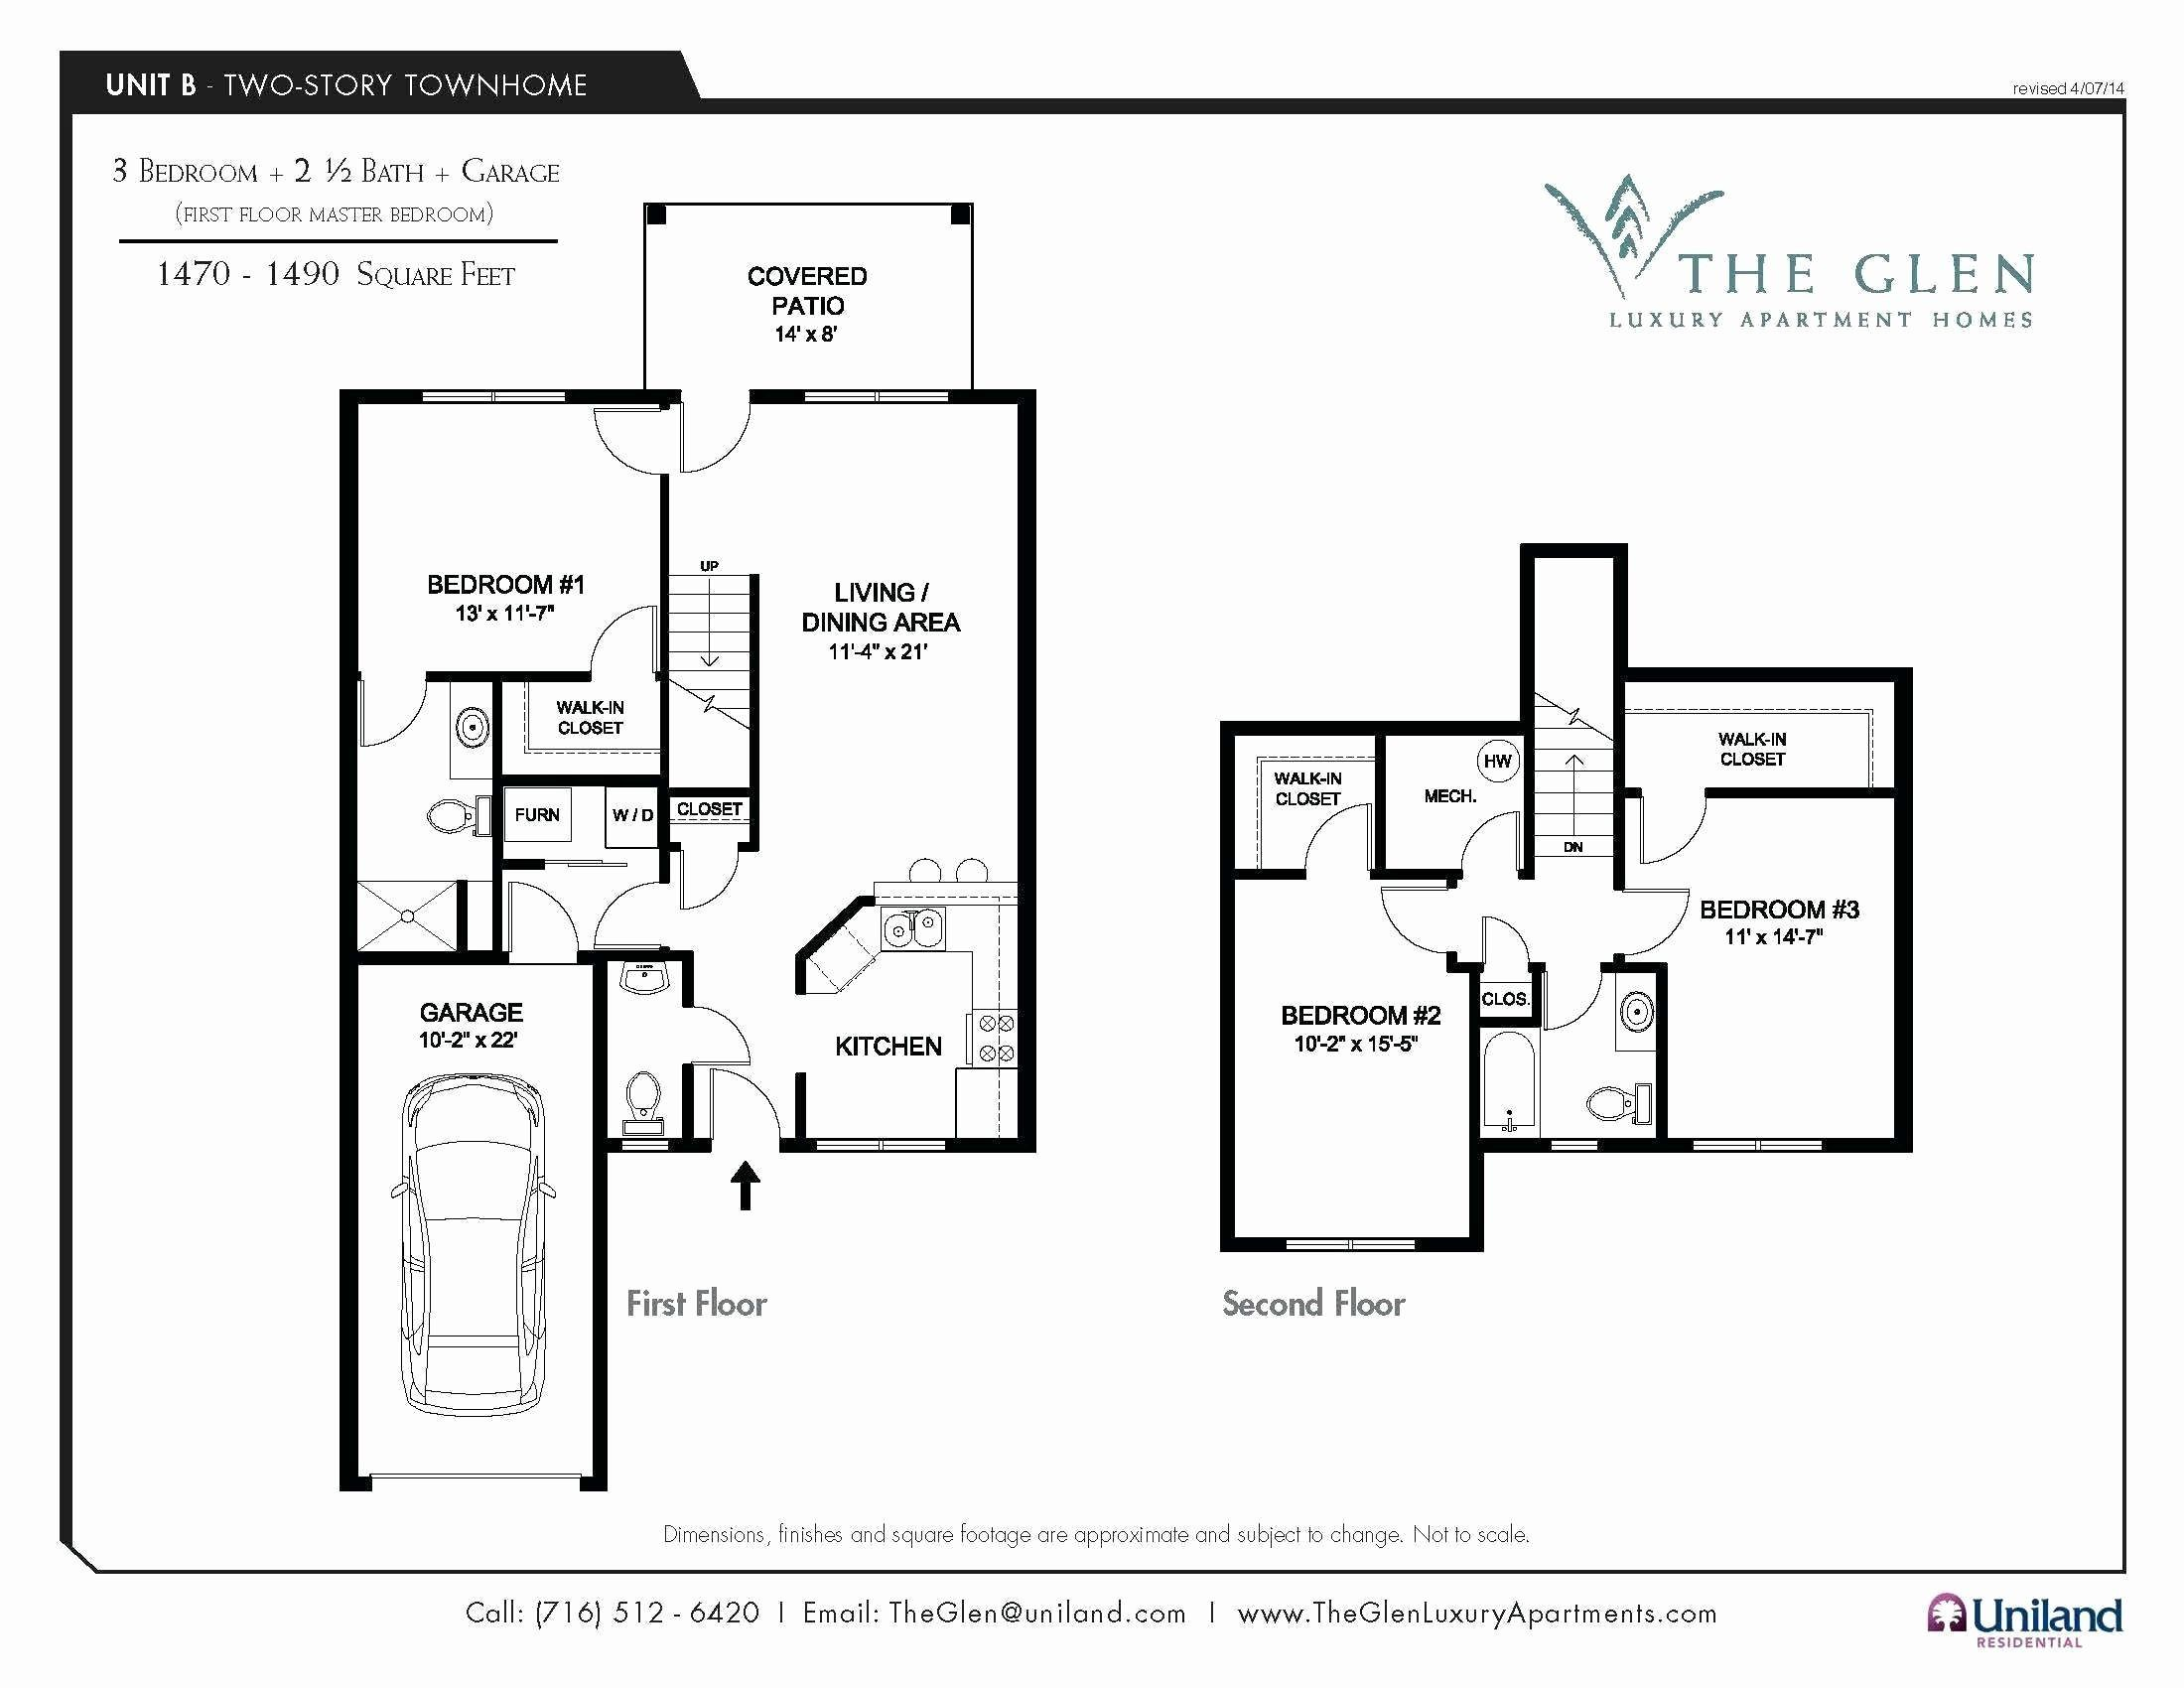 Server Room Floor Plan Visio Stencil Check More At Http Www Arch20 Club 2017 10 17 Server Room Floor Plan Visio Stencil Floor Plans Server Room Room Flooring